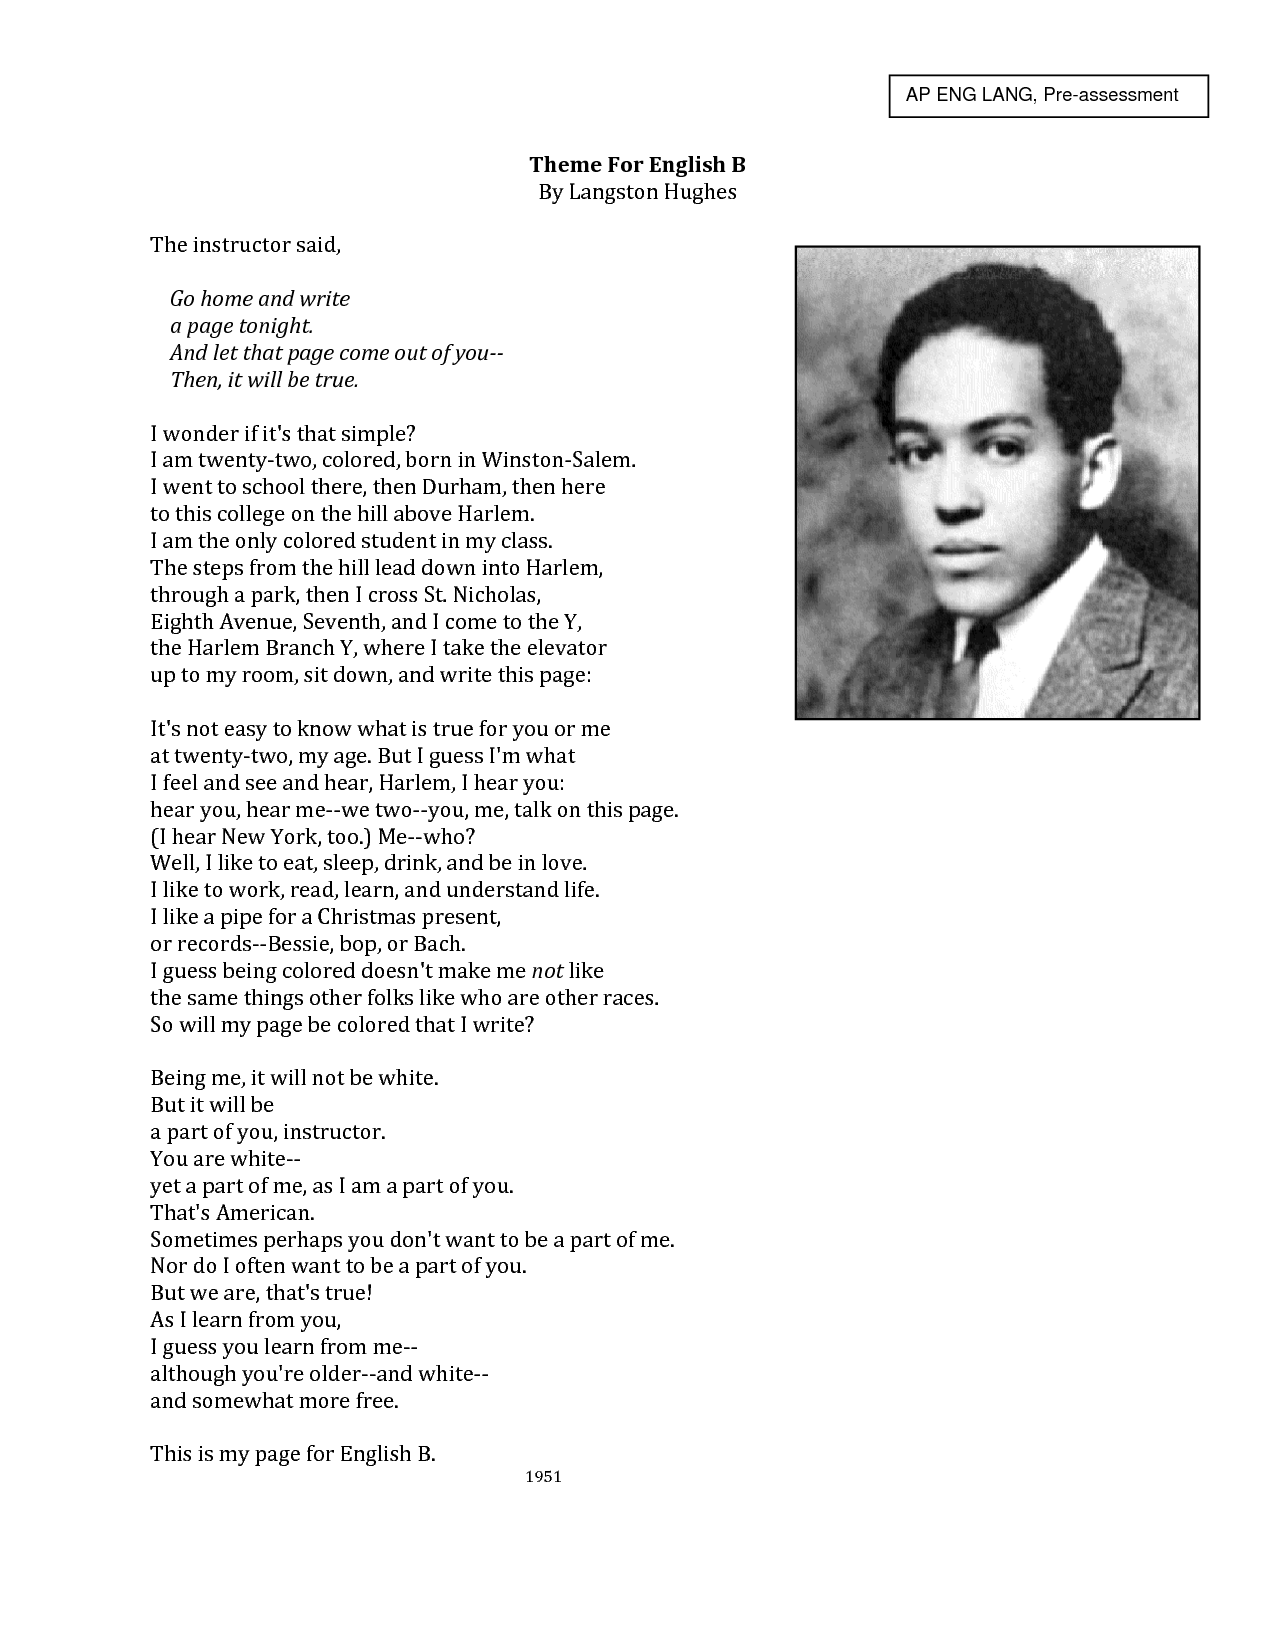 best images about langston hughes parks rivers 17 best images about langston hughes parks rivers and poems by langston hughes